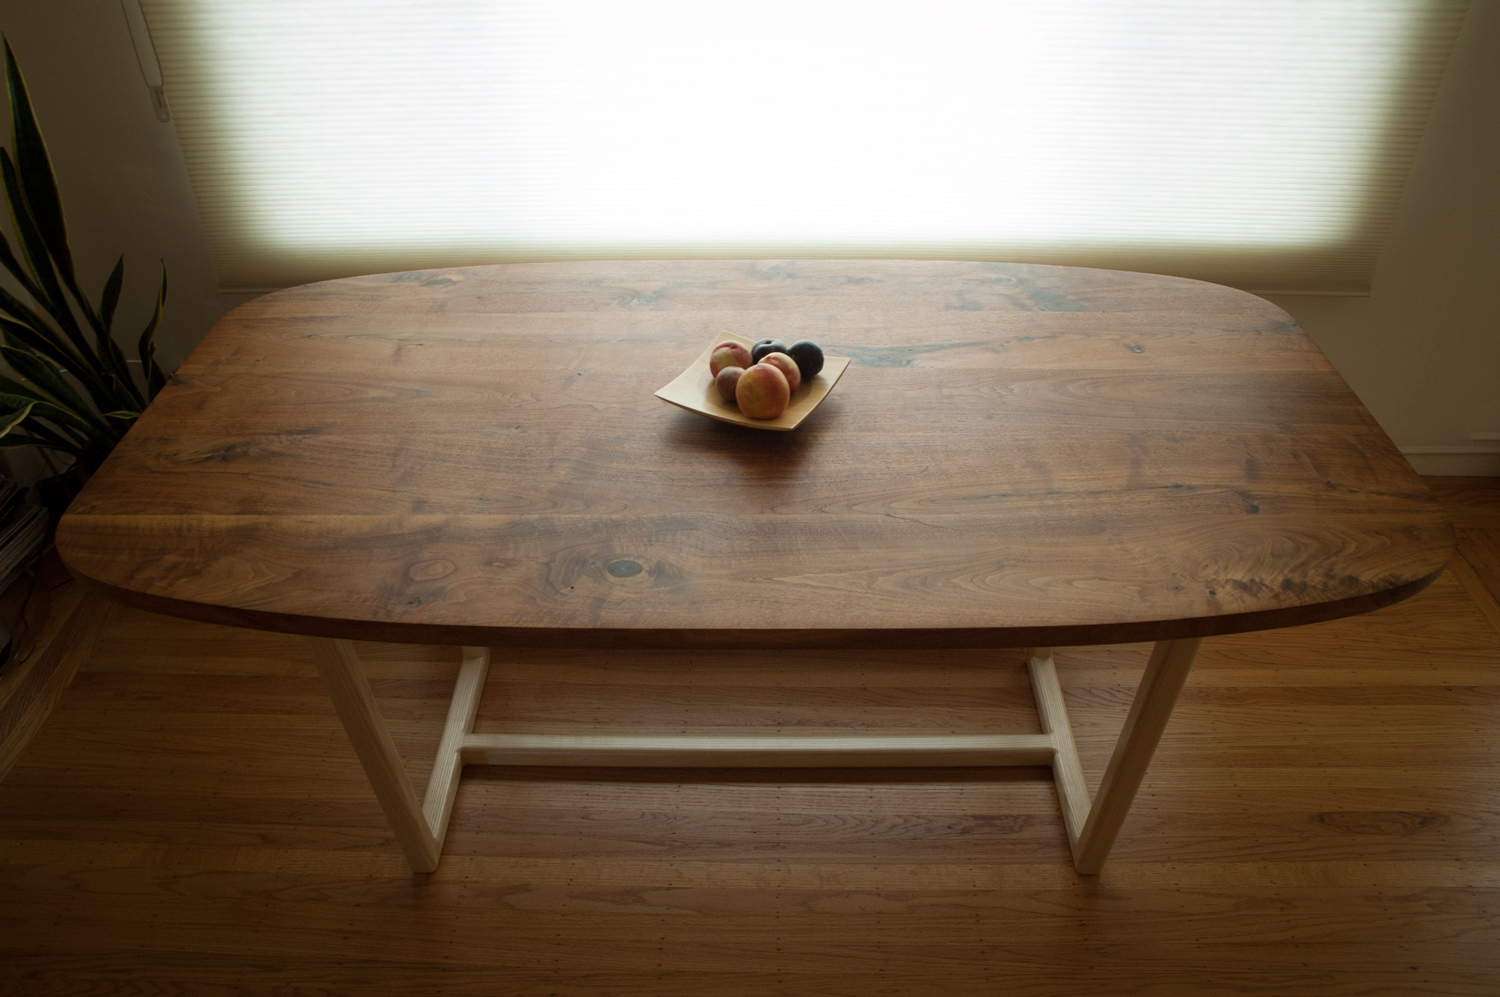 table-top-view.jpg